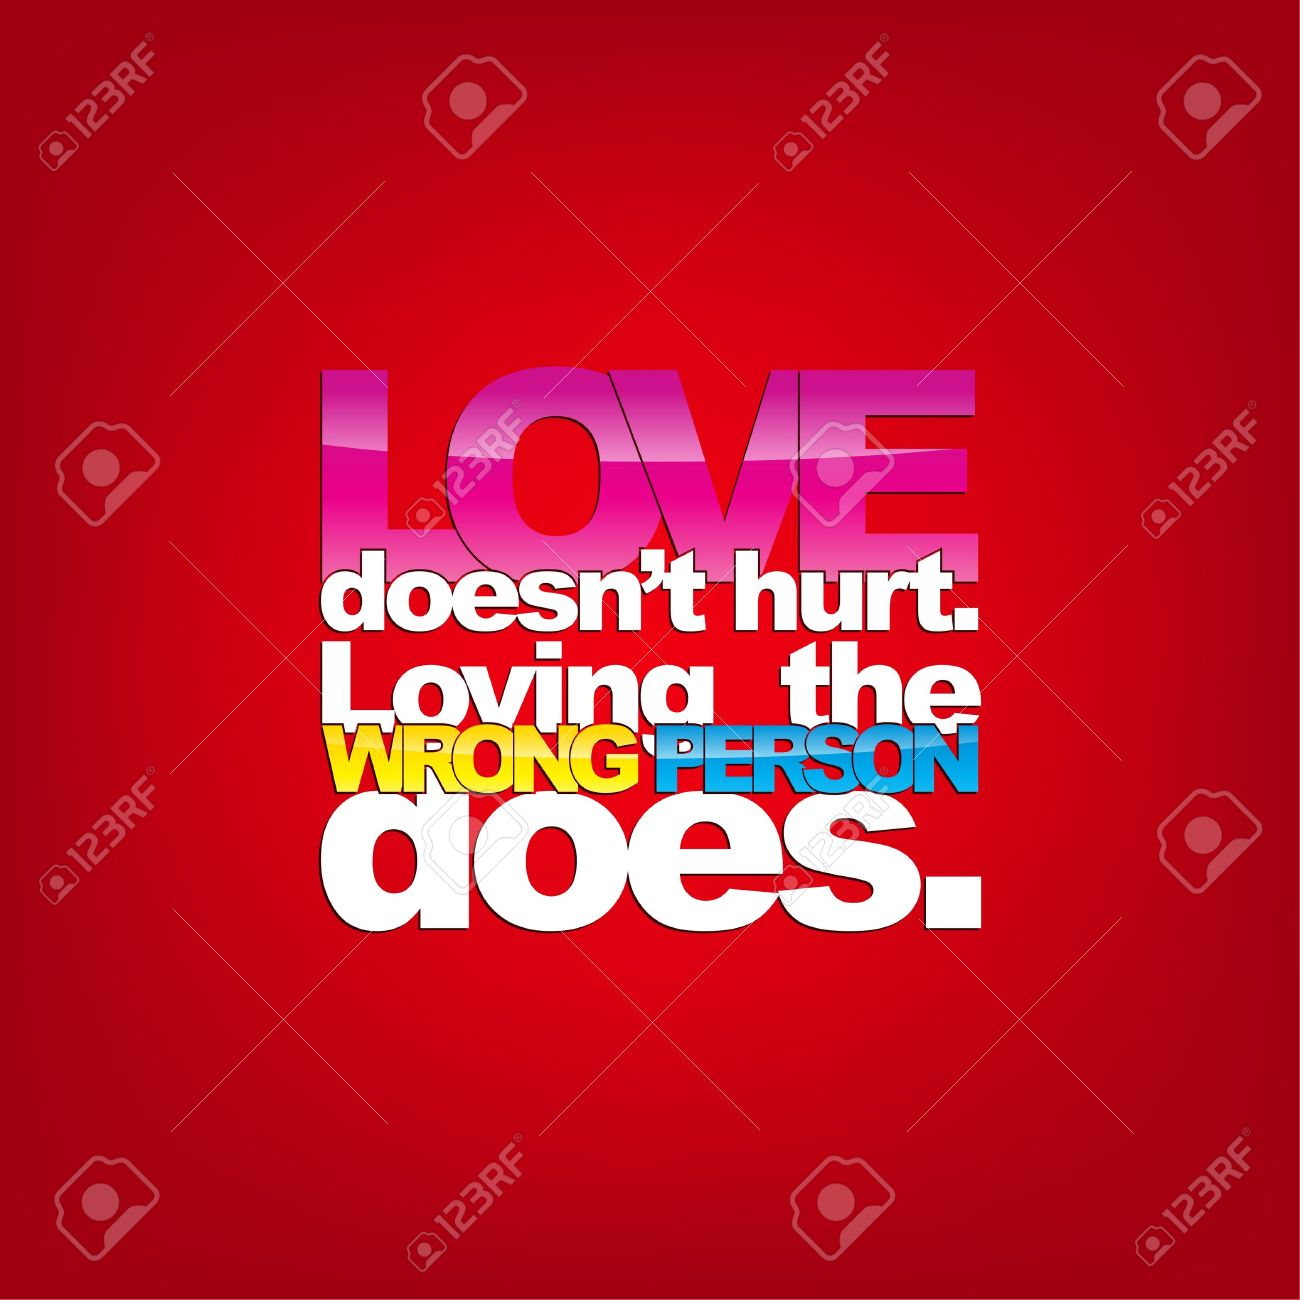 Love Doesnu0027t Hurt. Loving The Wrong Person Does. Typography Background  Stock Vector